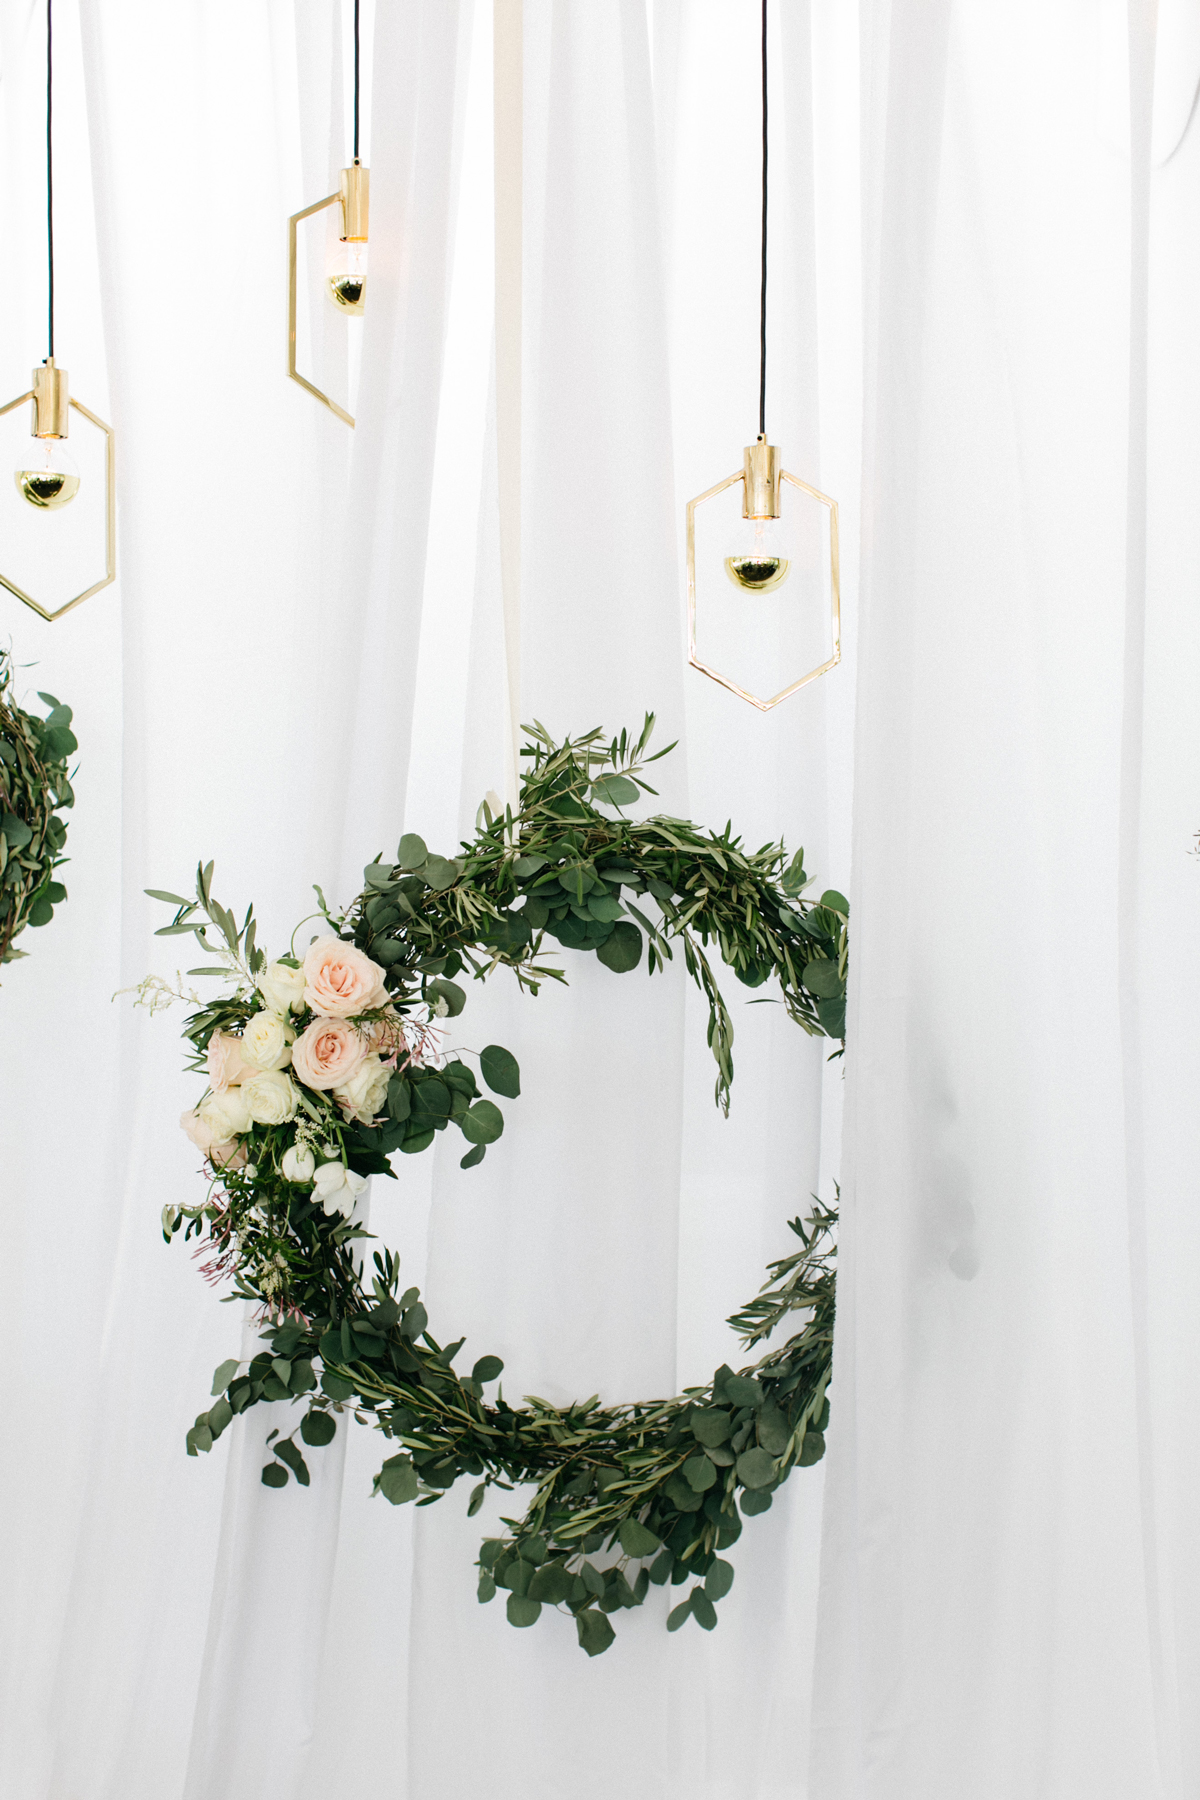 wedding wreaths foliage and roses hanging by exposed light bulbs